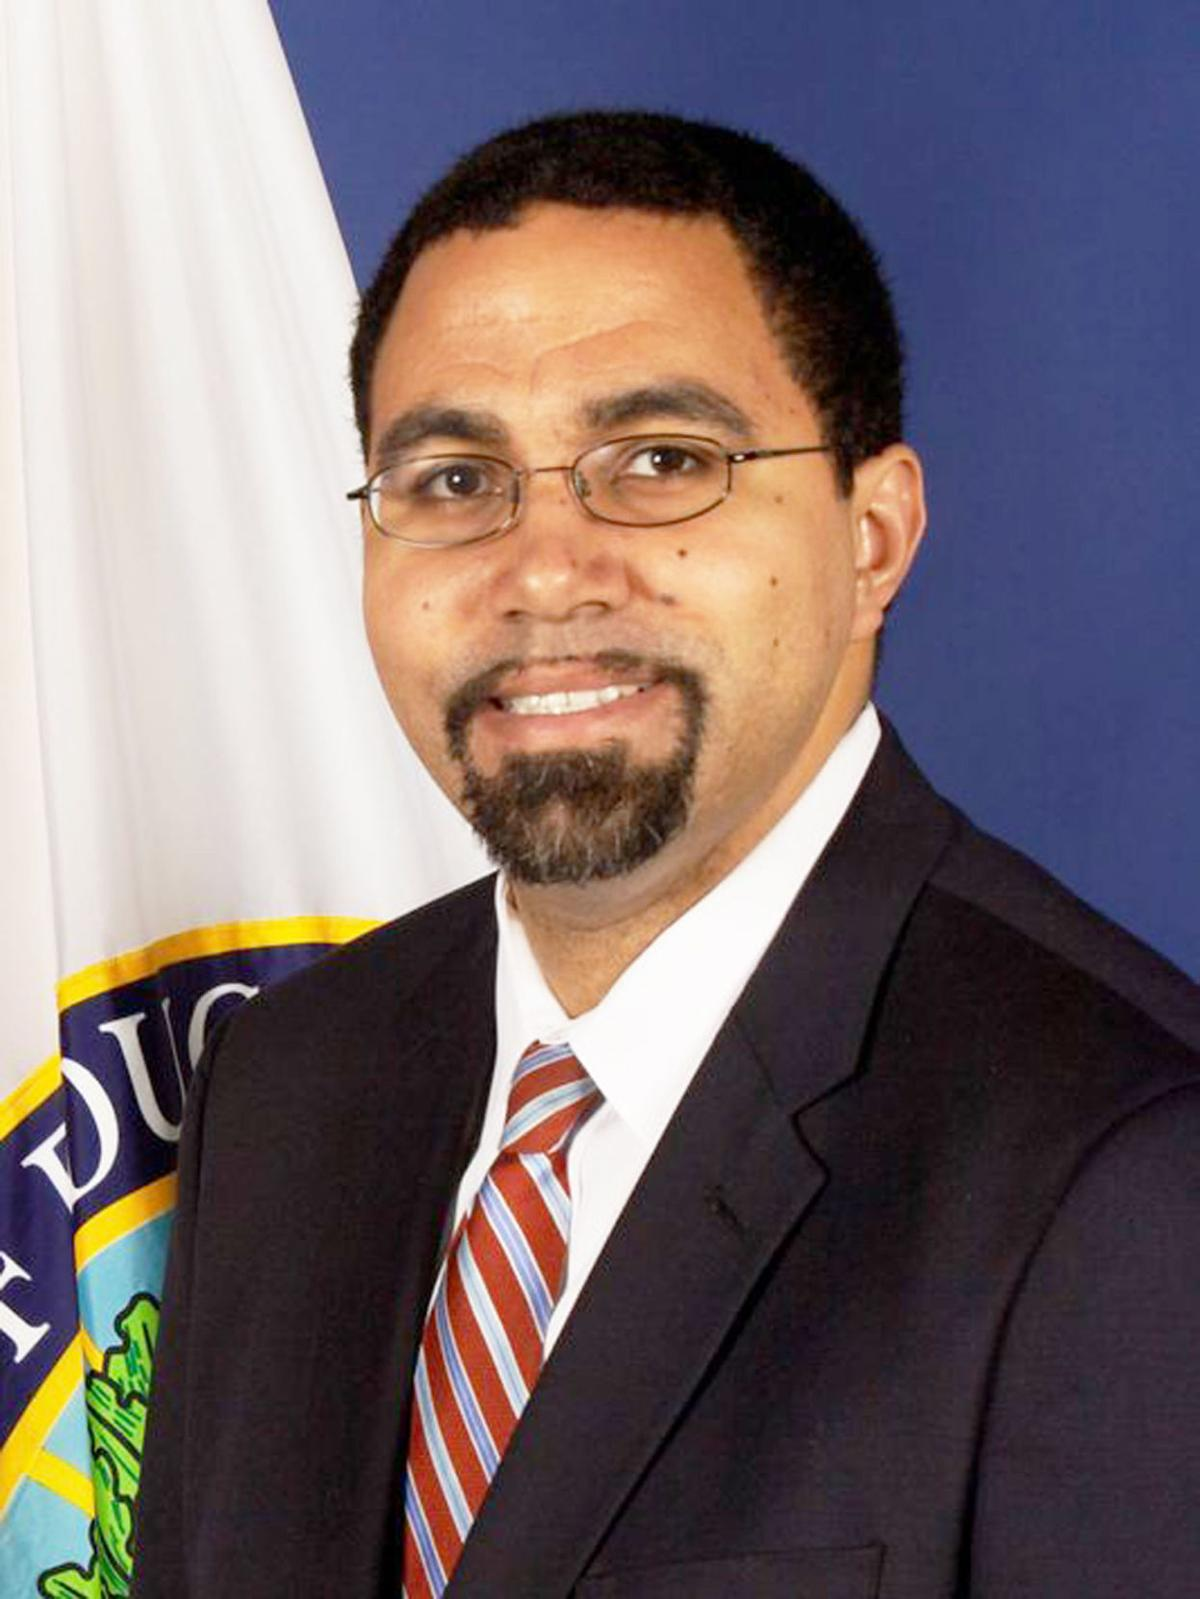 Secretary of Education calls for high-quality education programs in correctional facilities